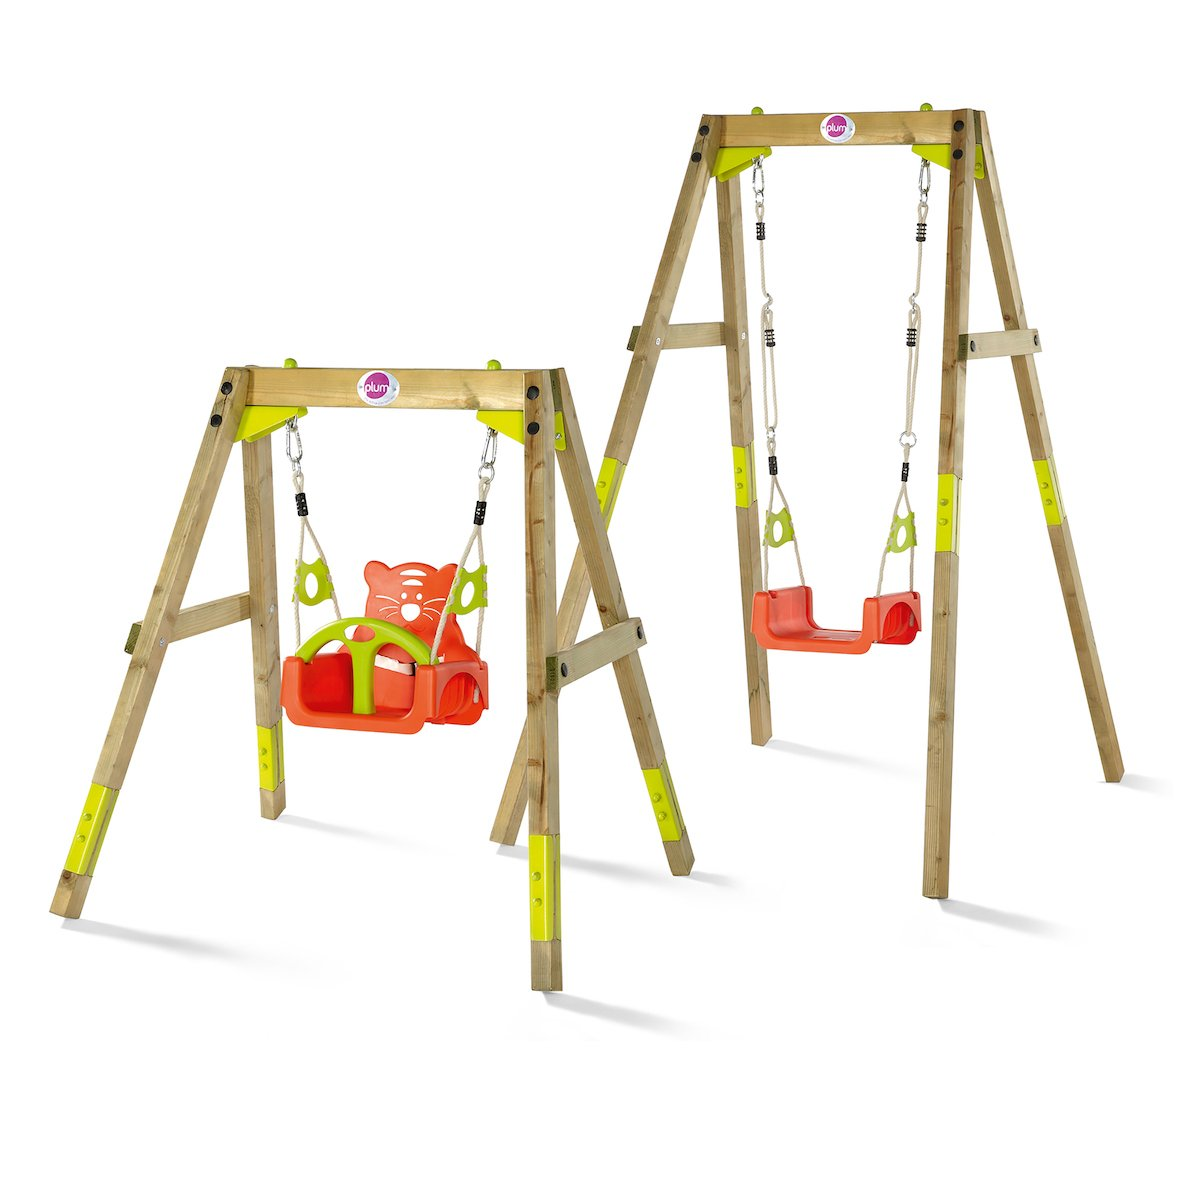 Plum wooden grow. swing set